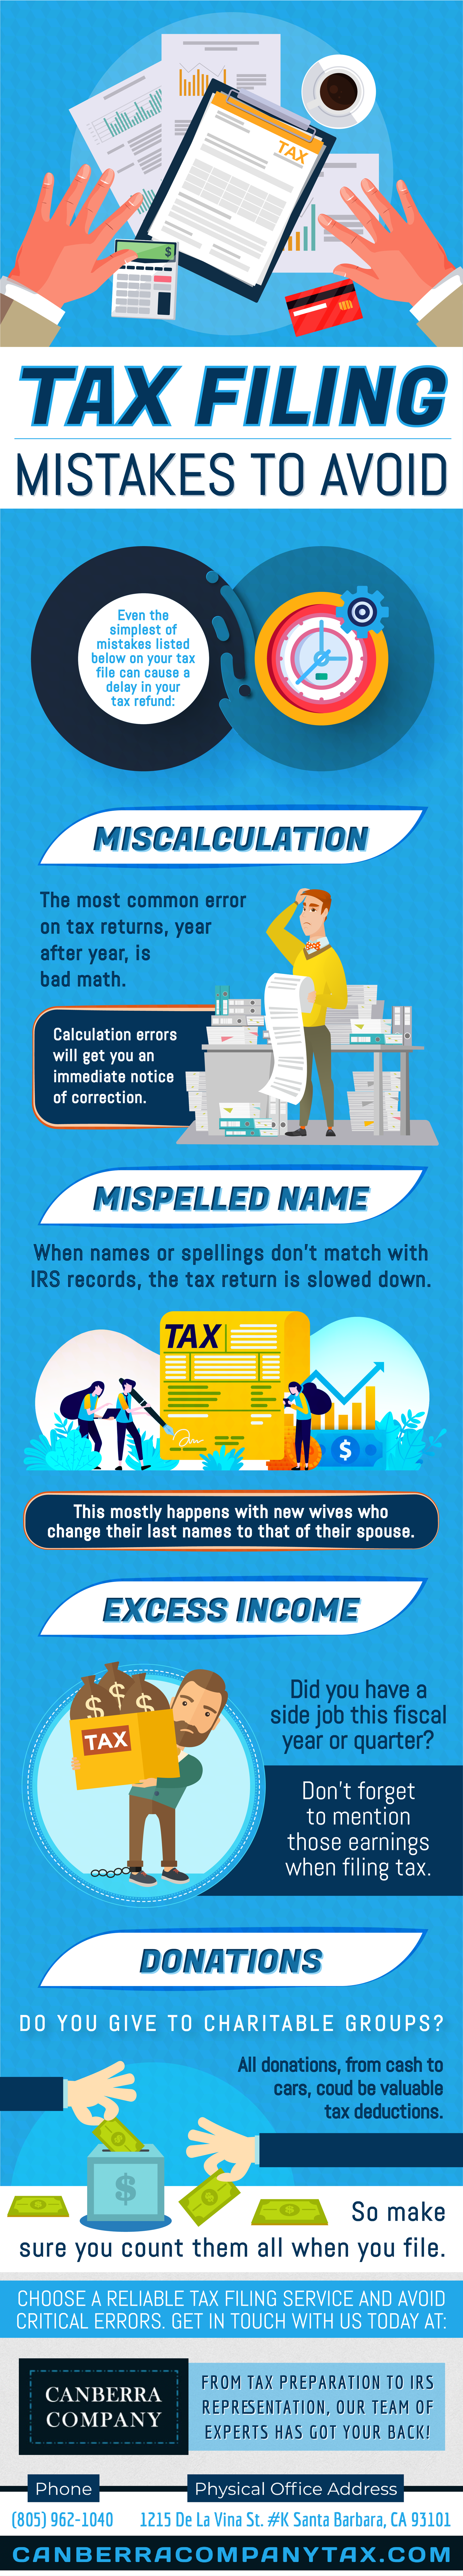 What are Tax Filing Mistakes to Avoid